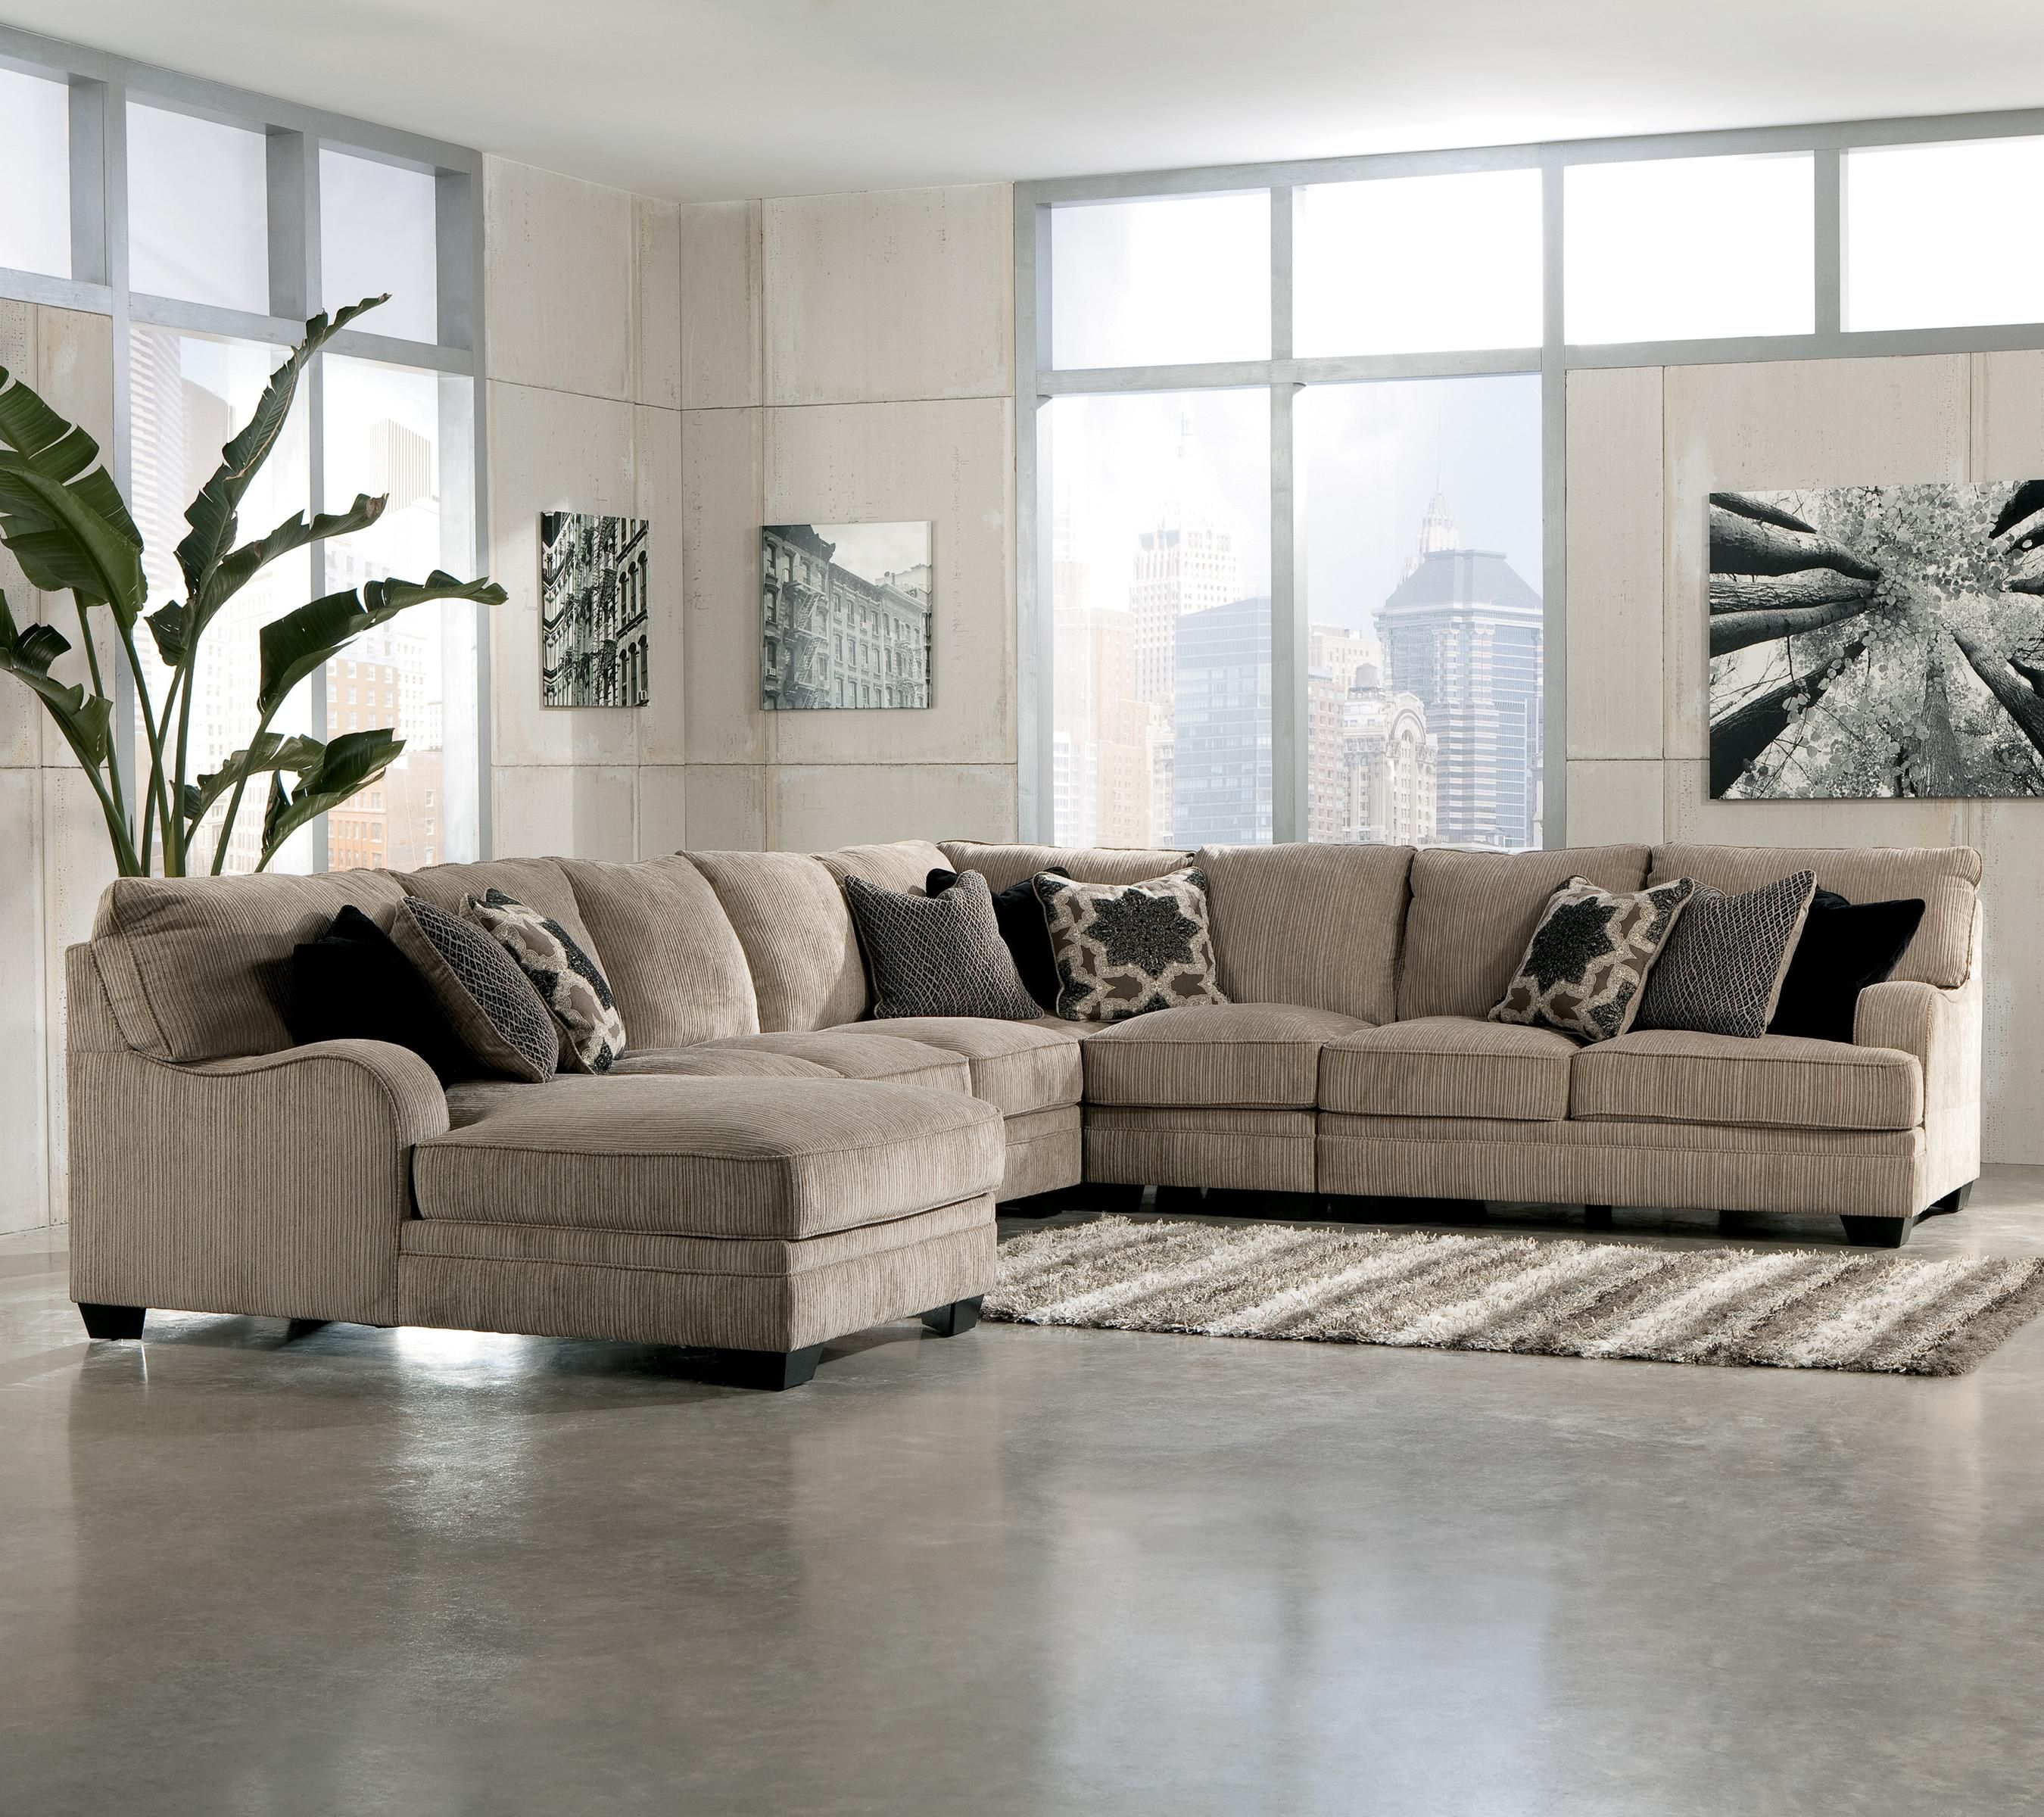 couch full furniture sets leather couches microfiber living maier ashley sectional recliner room chaise with size sofas of sofa